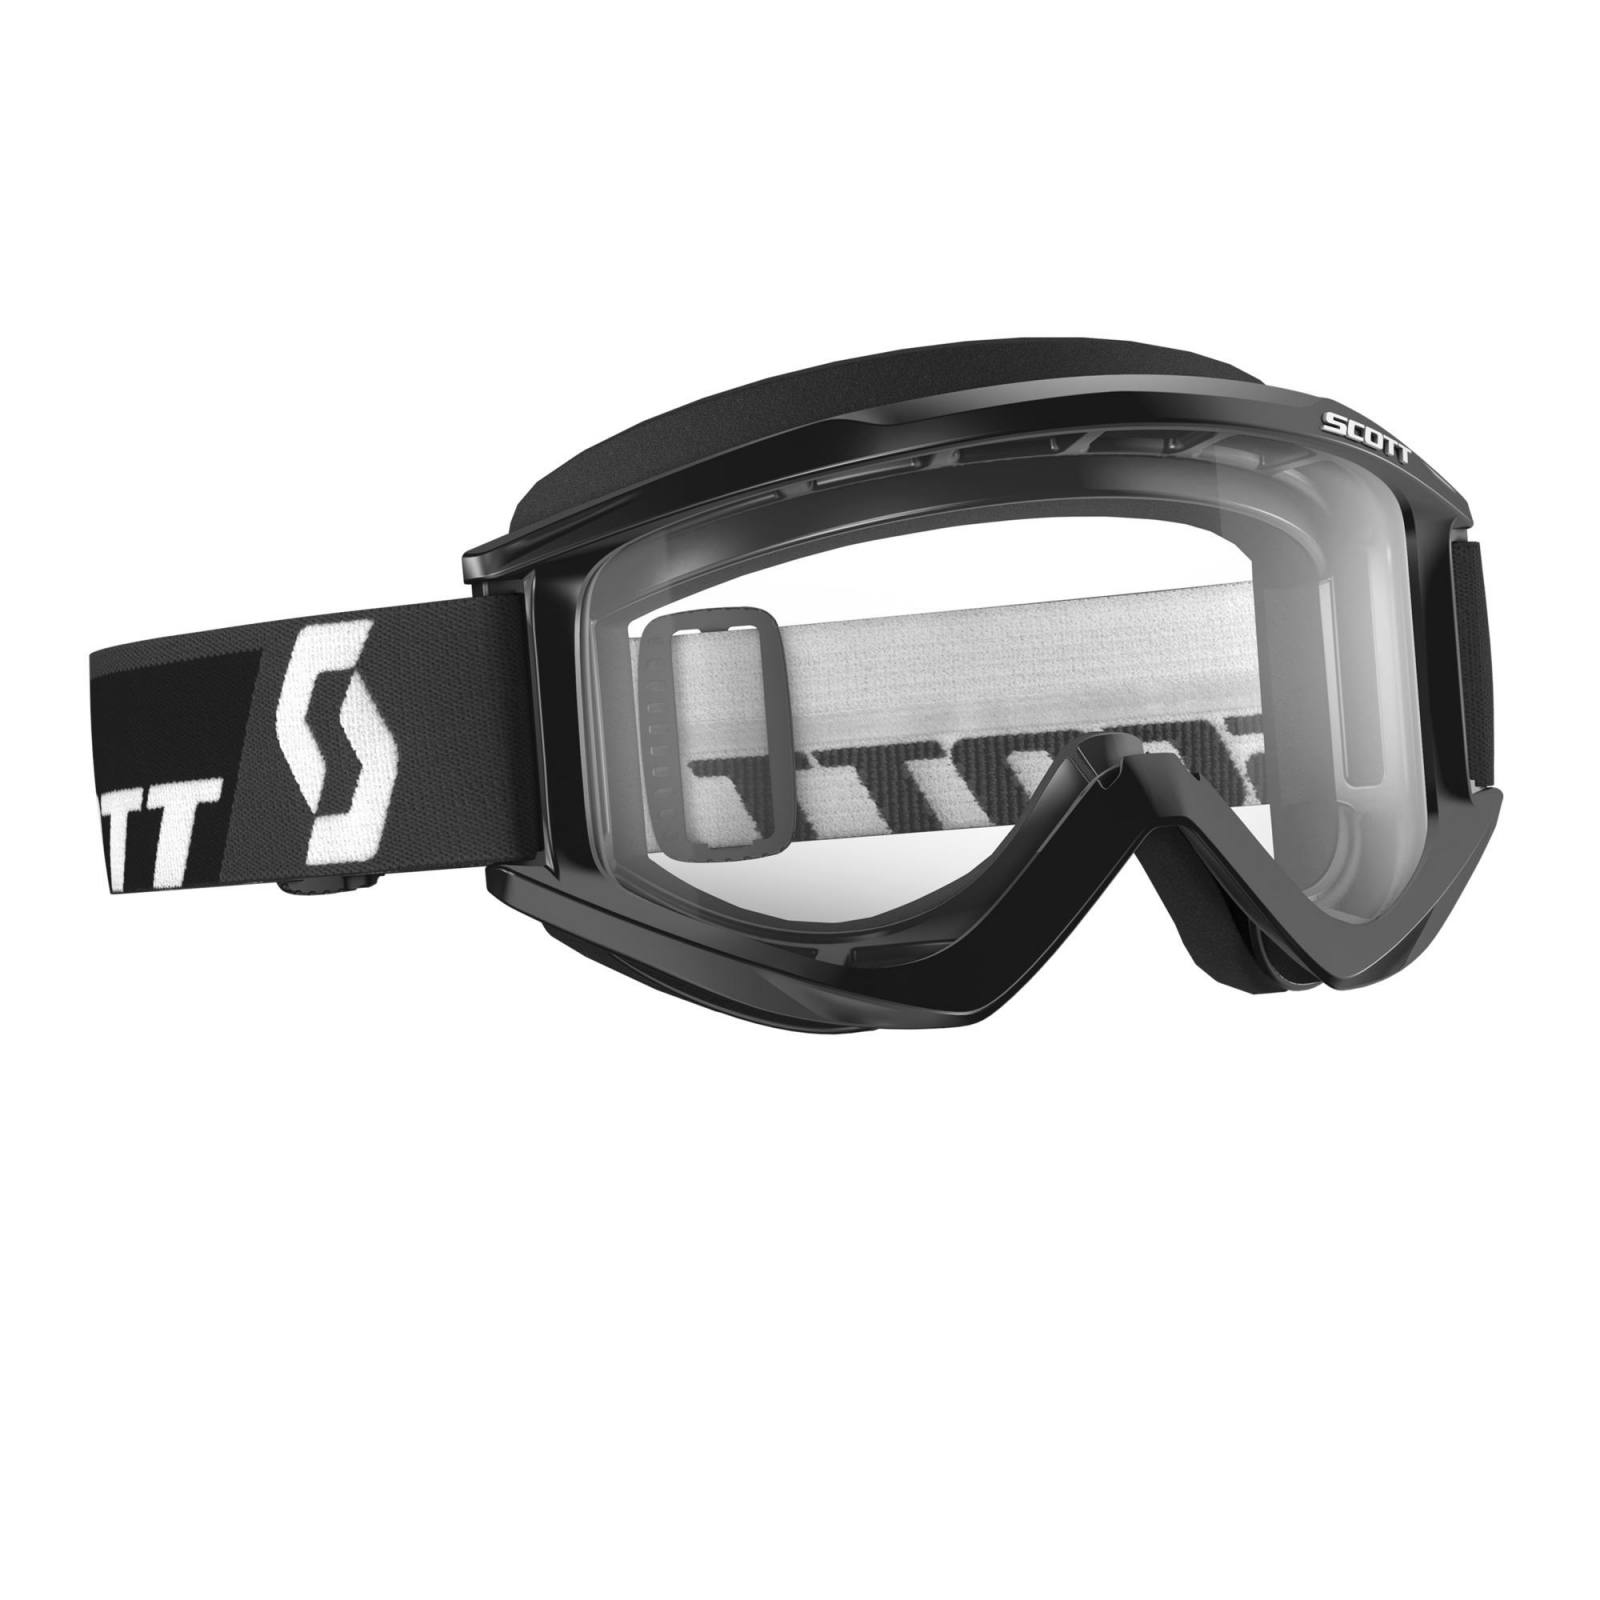 Scott USA 262596-1030113 White With Clear Lens Recoil Xi Goggles White//Blue